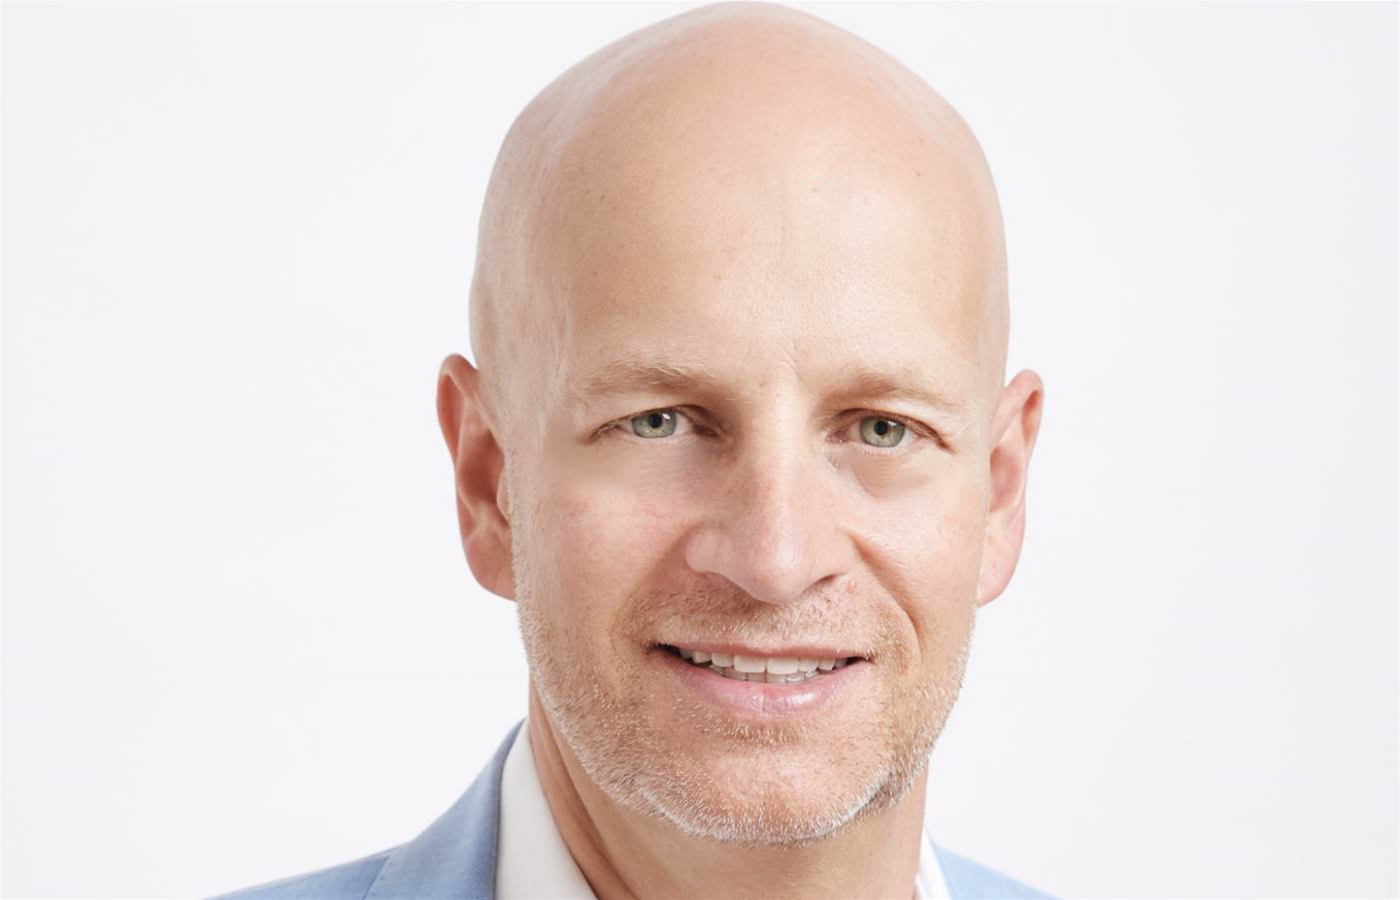 Telstra-backed software vendor NGINX expands to ANZ, appointing Anthony Leverington as country manager